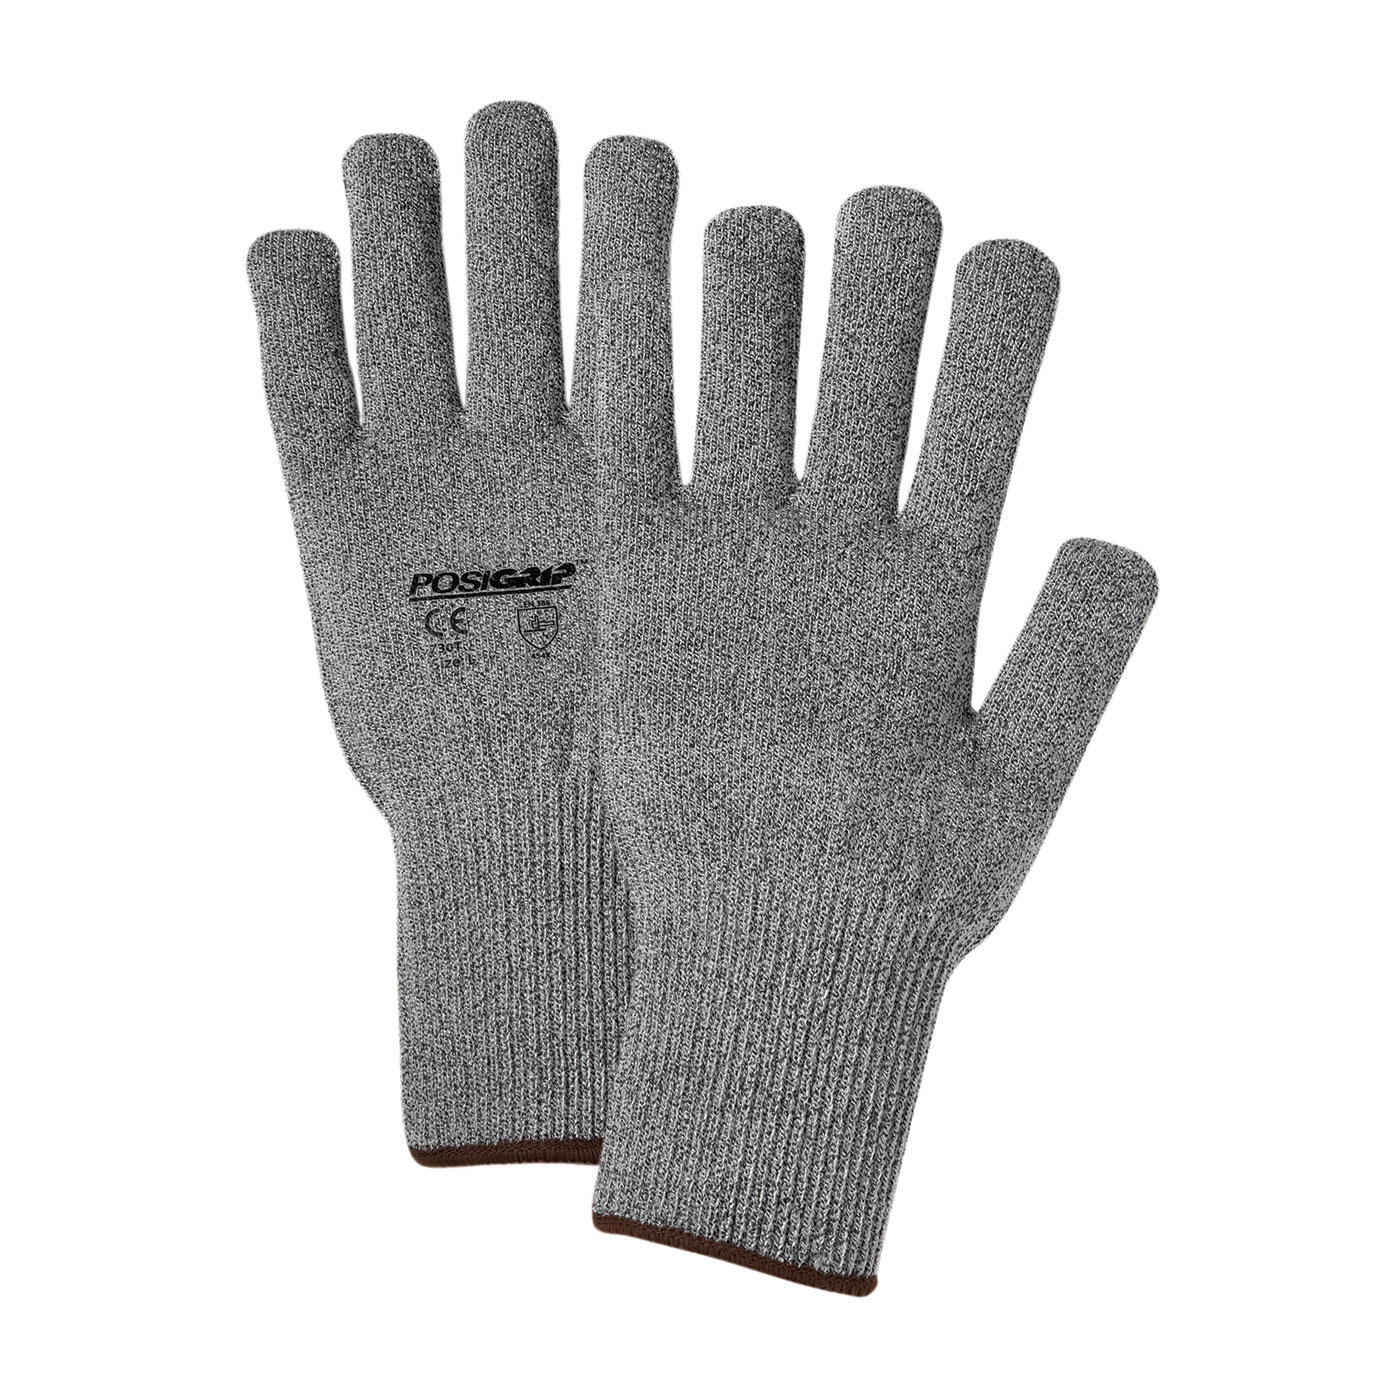 Seamless Knit HPPE Blended Glove - Light Weight, Gray, L